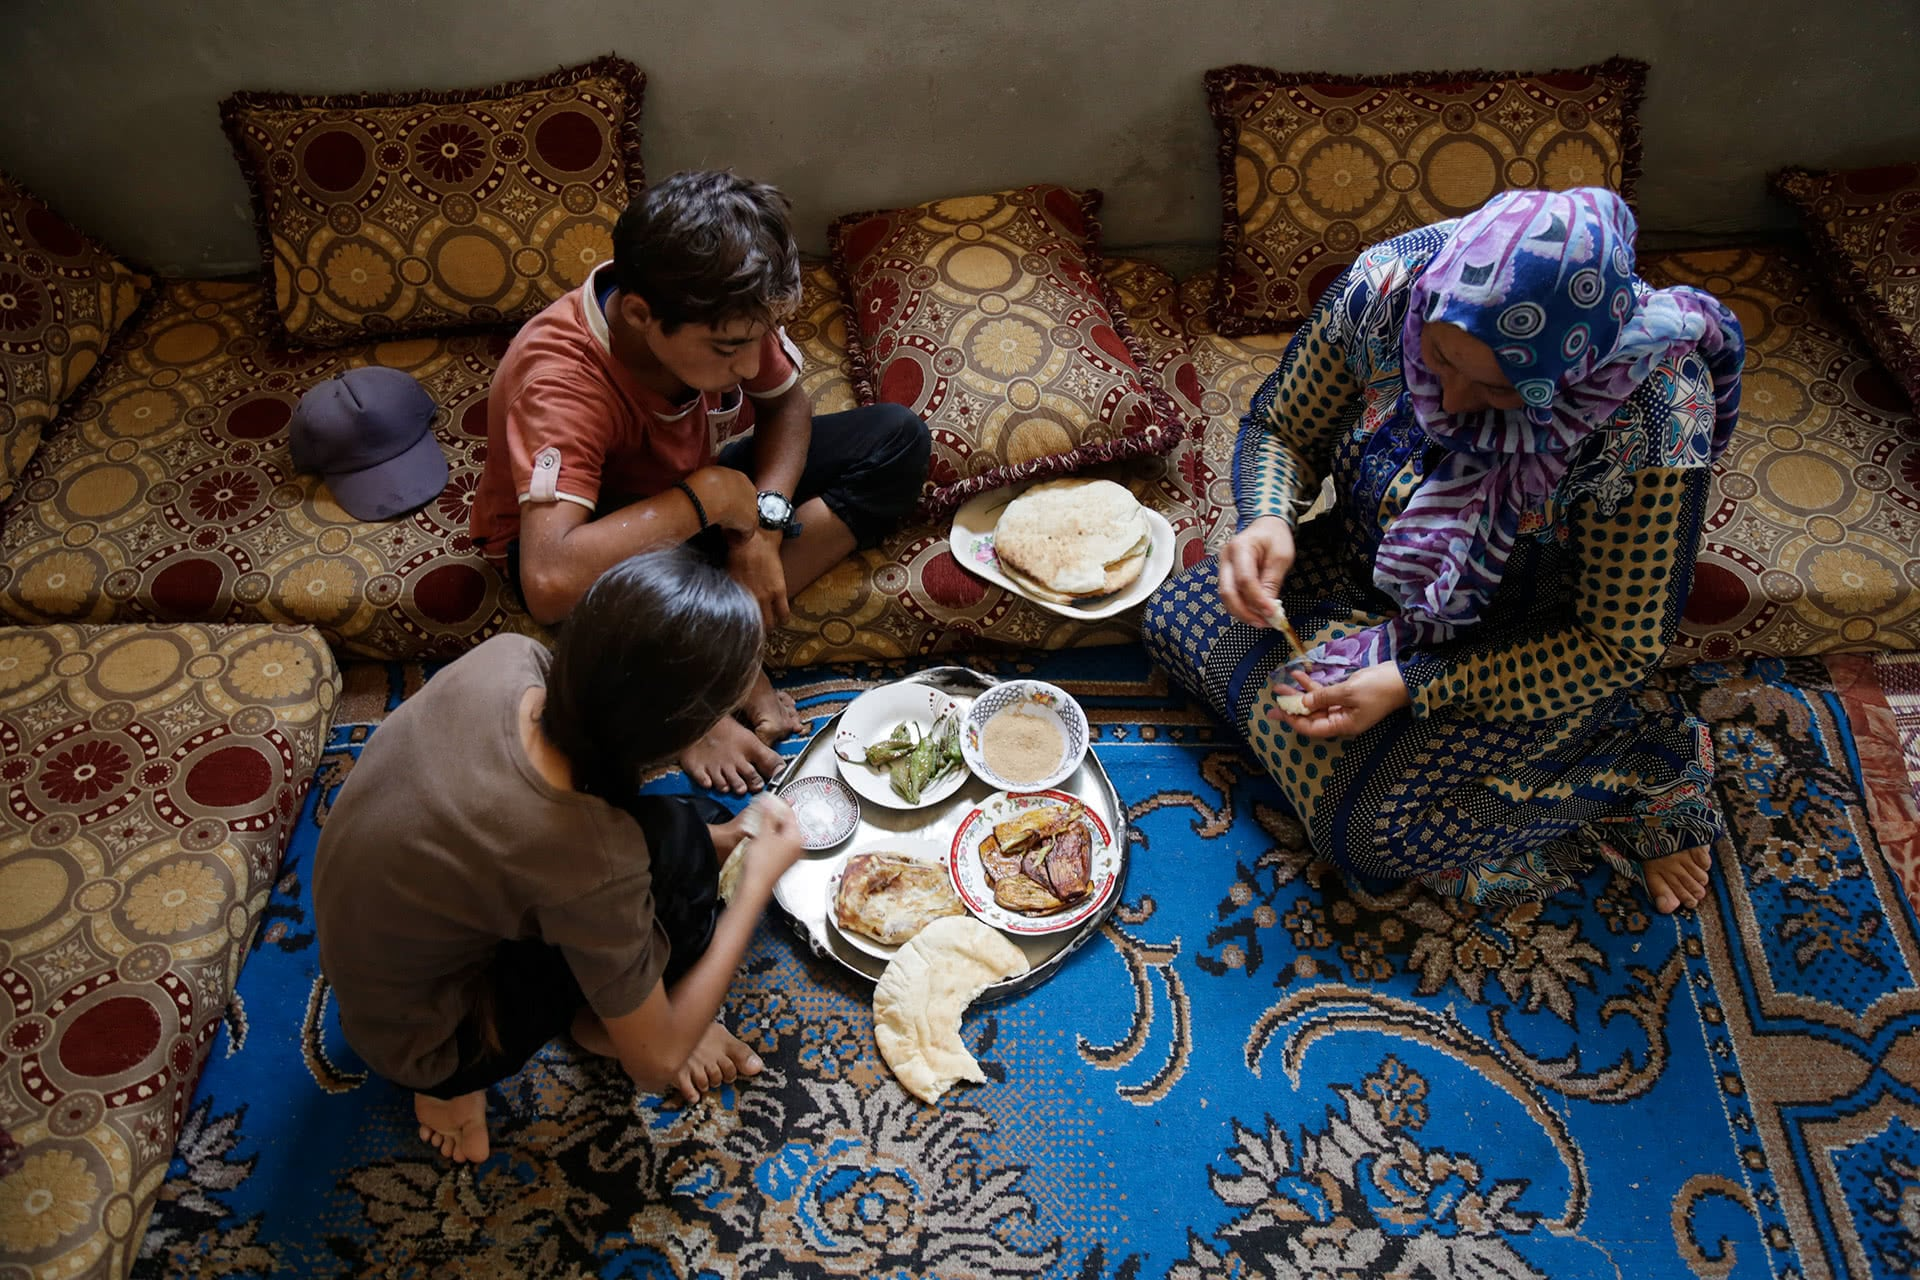 Ahmad Abu Samra, 13, sits on the floor for a meal of bread, eggplant and peppers with his mother and sister. (Photo: DCIP / Saud Abu Ramadan)